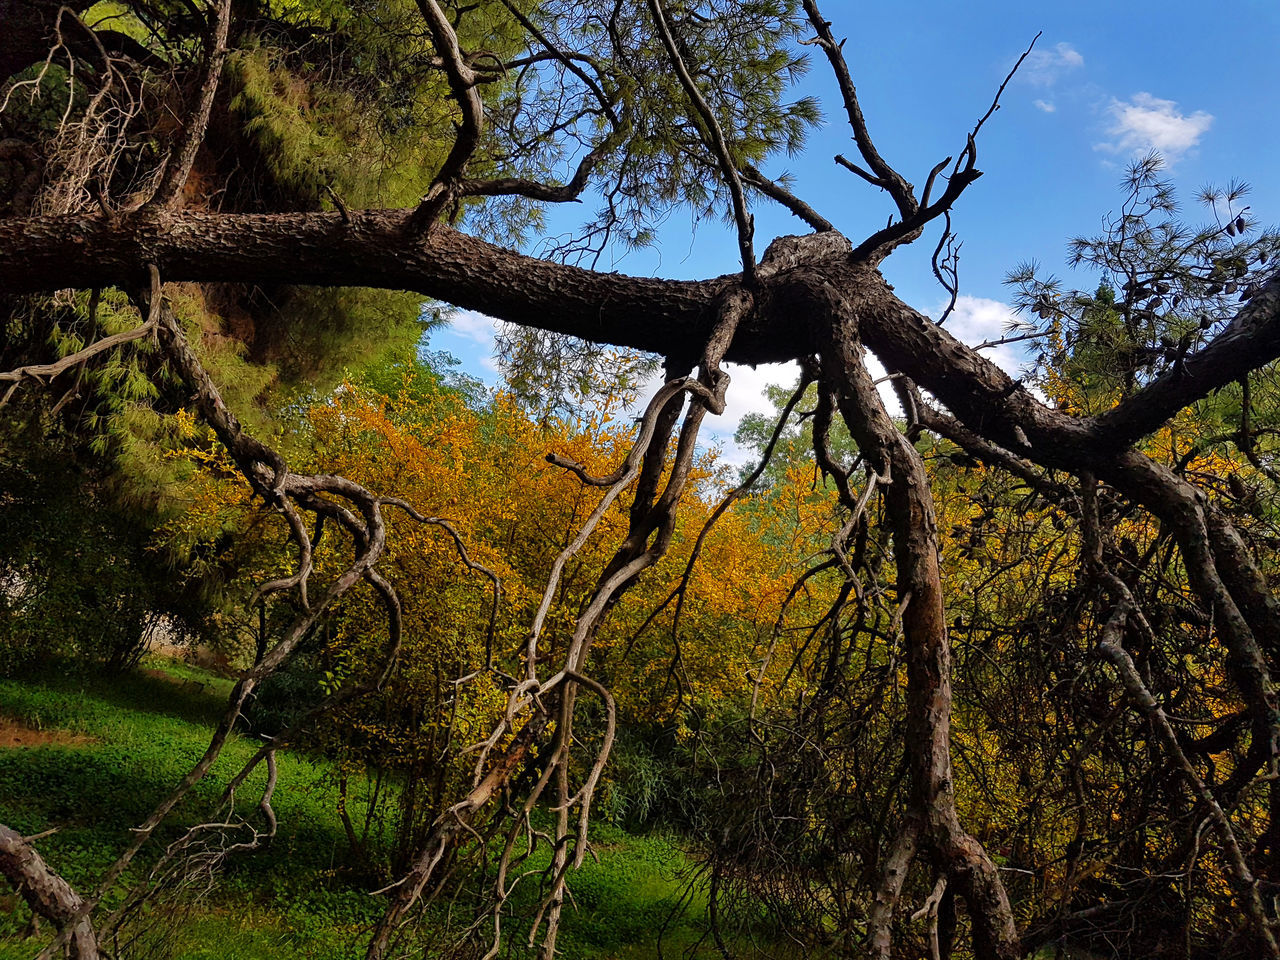 Beauty In Nature Branch Day Forest Low Angle View Nature No People Outdoors Sky Tree Tree Trunk